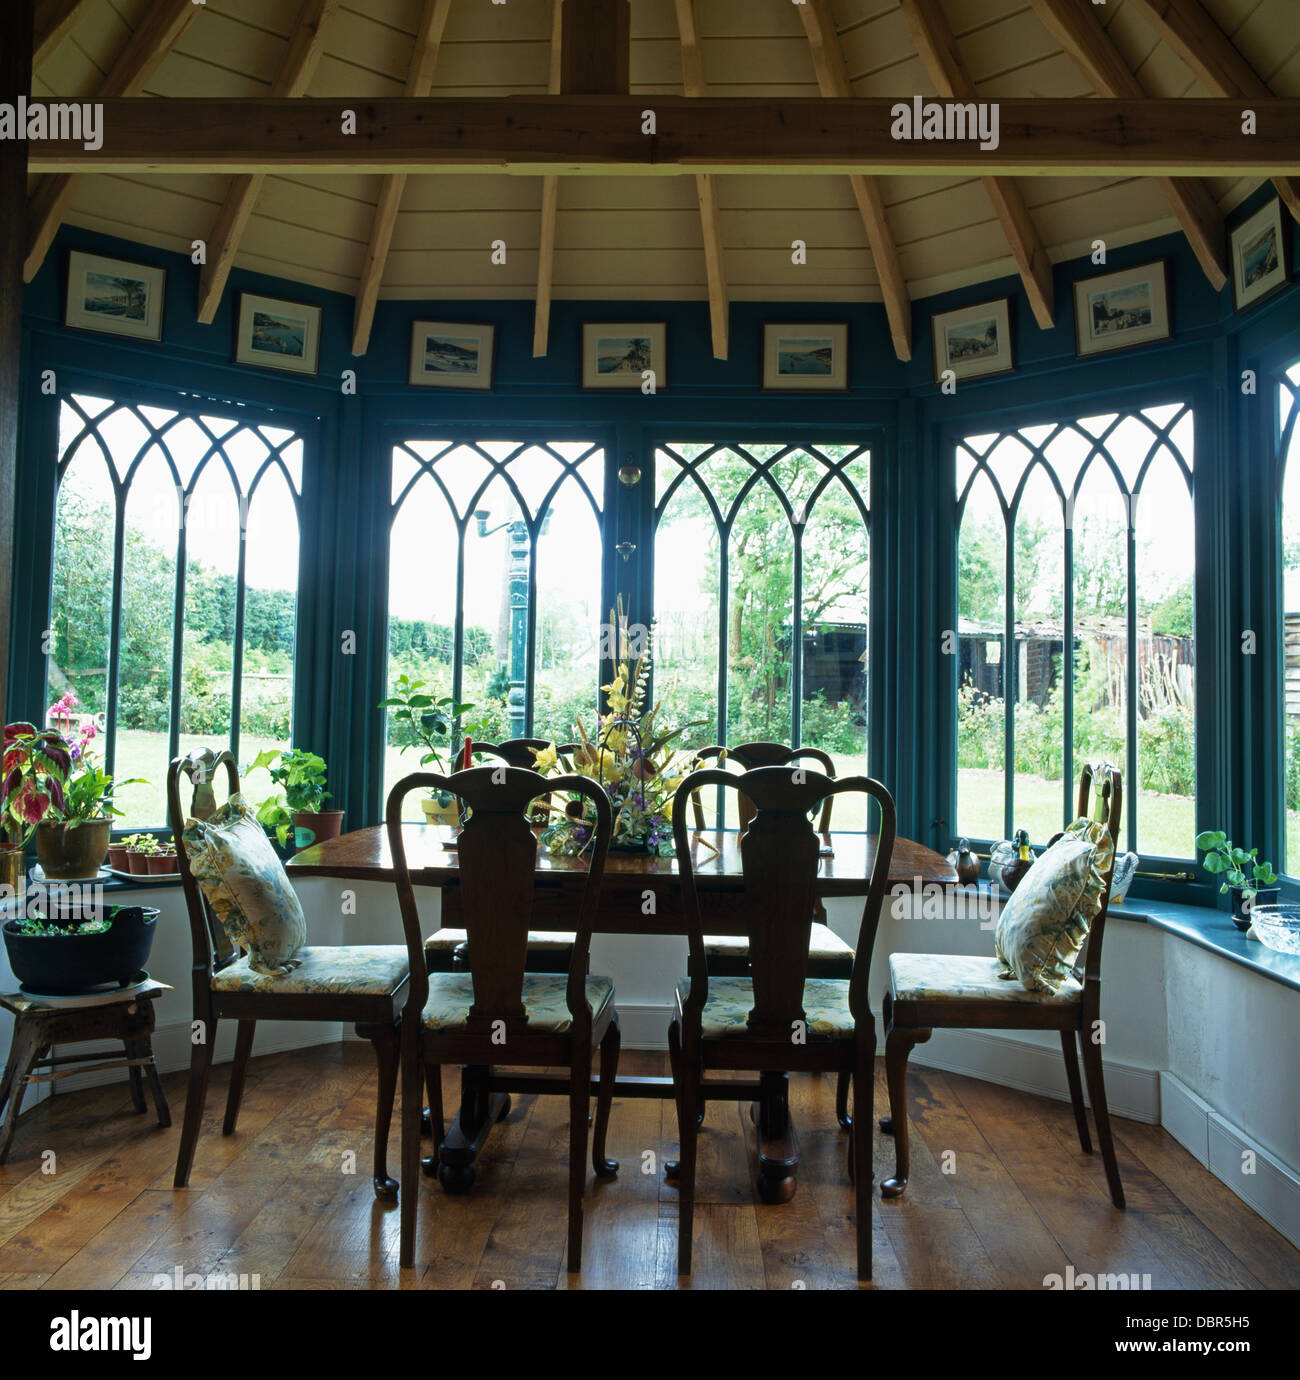 Antique Table And Chairs In Front Of Bay Window Dining Room With Wooden Floor Ceiling Newly Built Tudor Style House